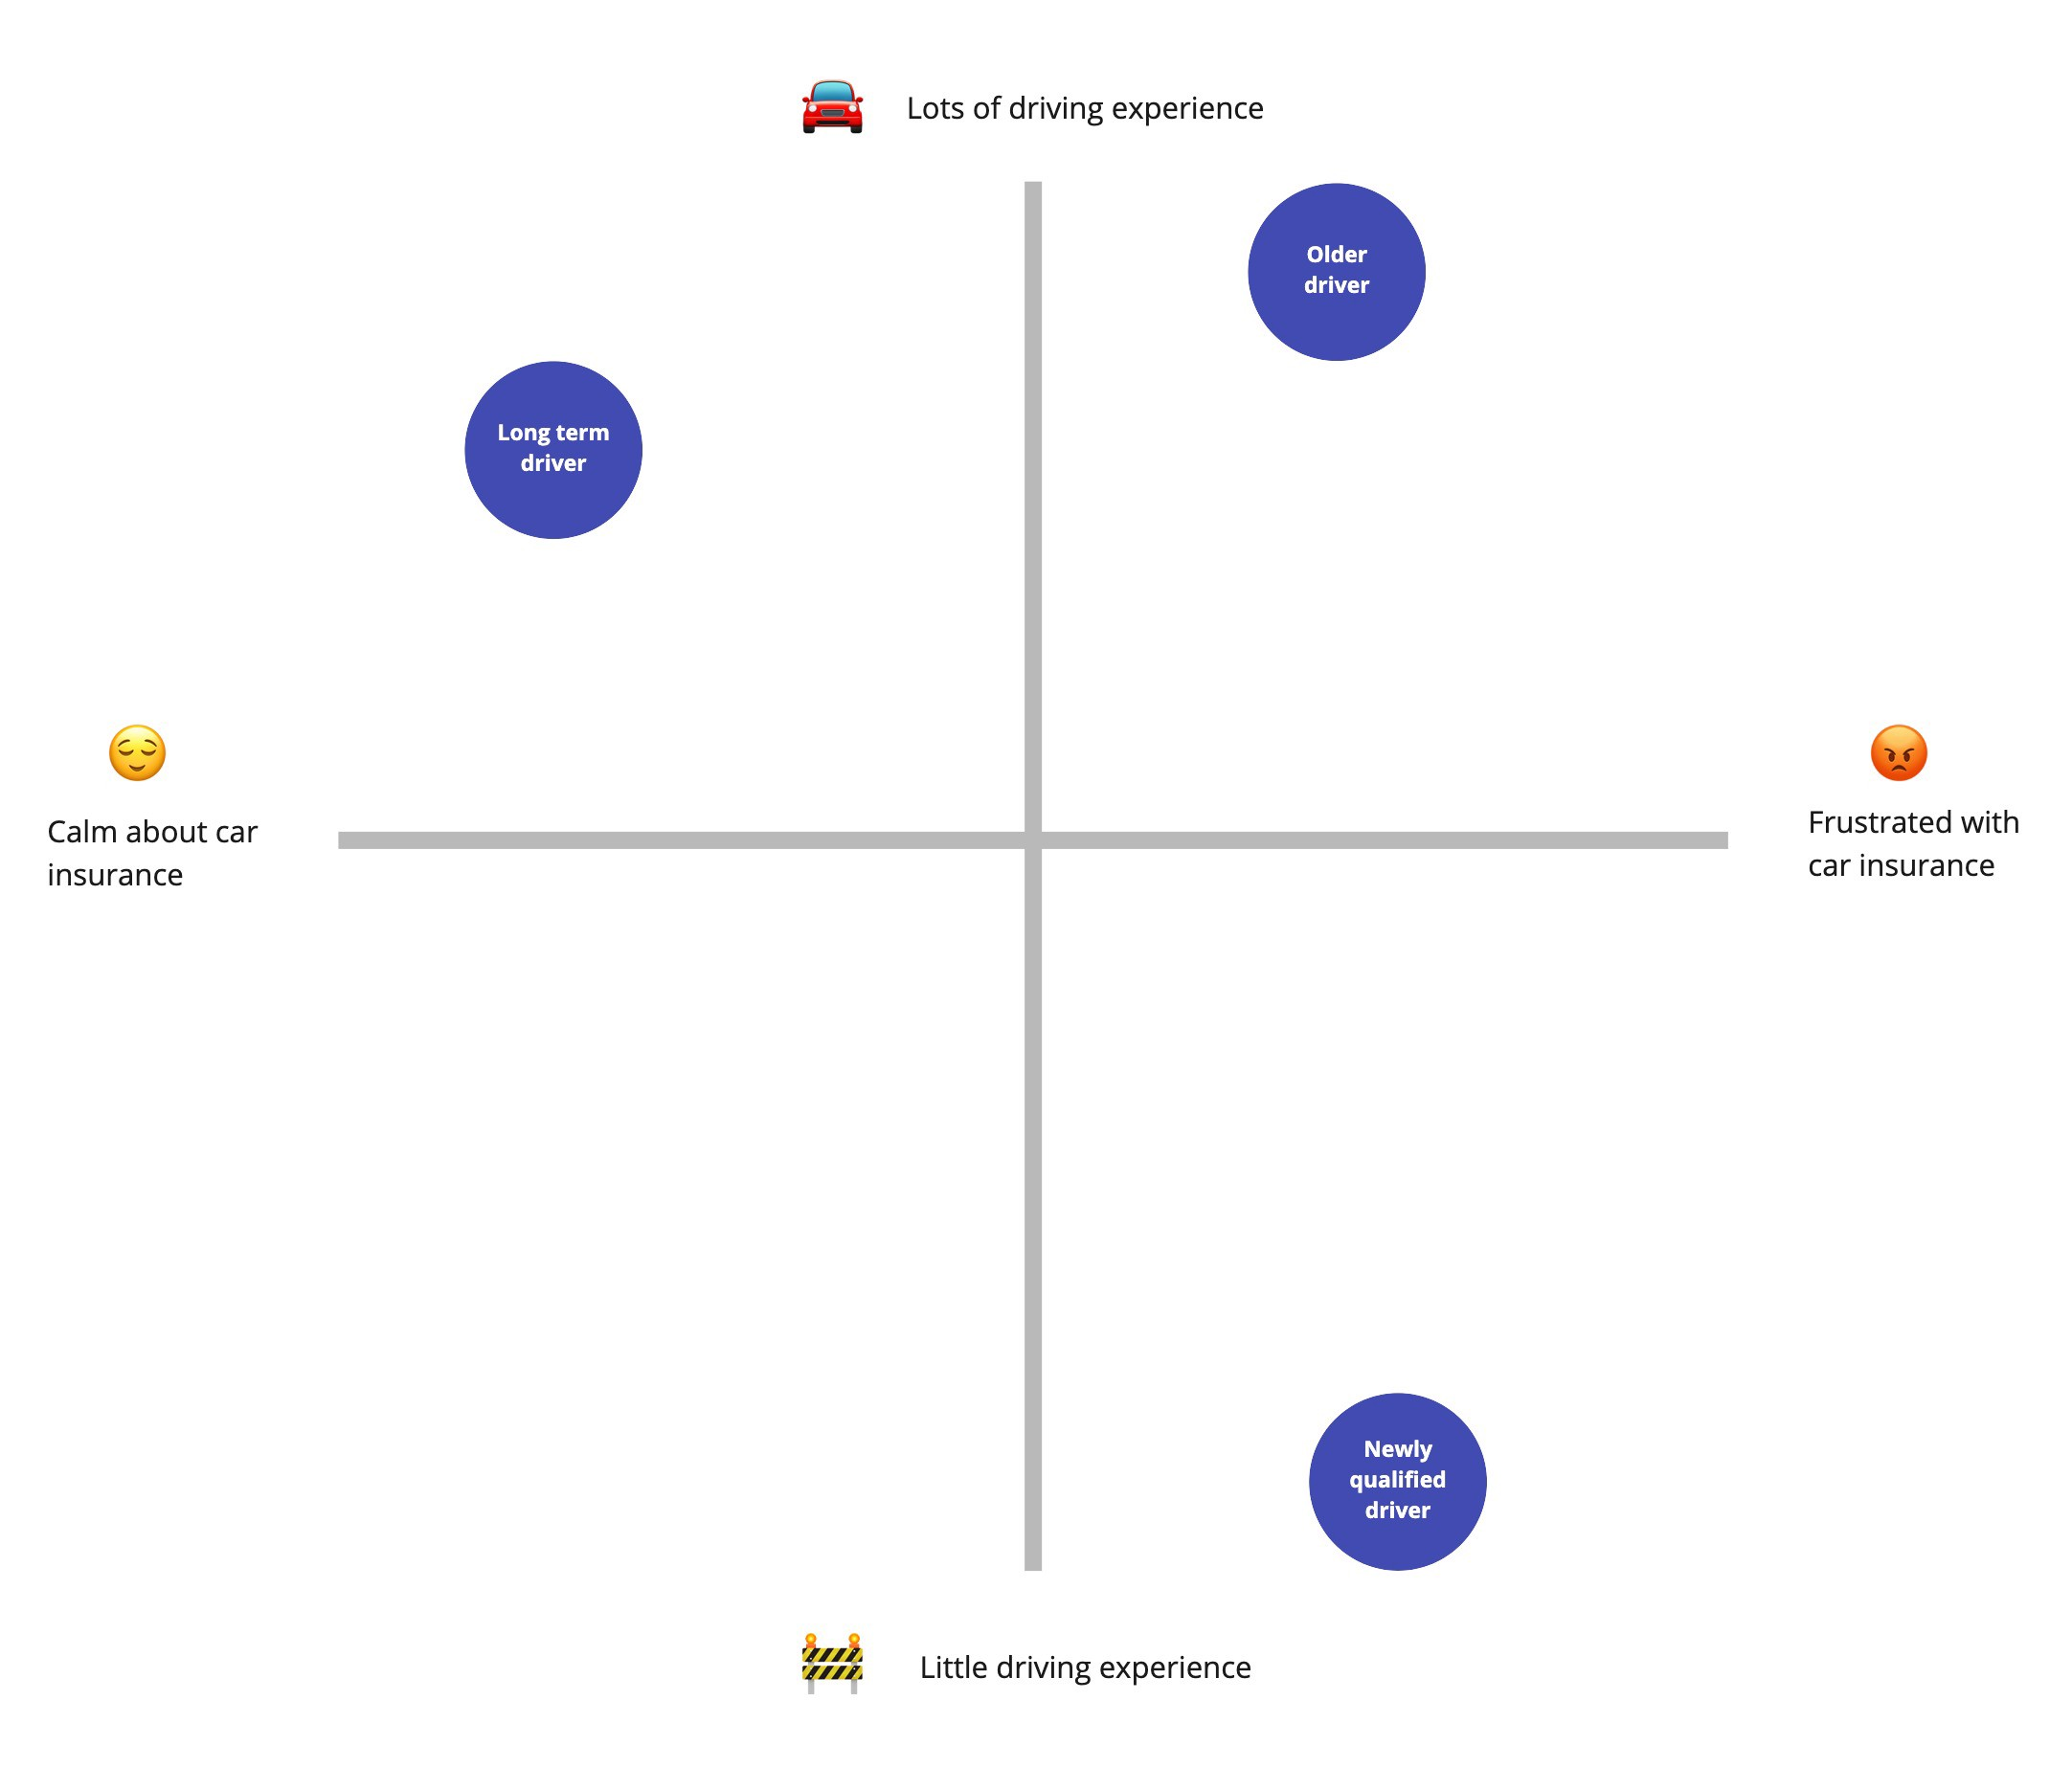 A 2 by 2 grid mapping 3 car insurance users against having lots of little experience driving versus how they calm or frustrated they feel about car insurance. User 1 'New driver' is mapped as little experience and frustrated. User 2 'Long term driver' is mapped as experienced and calm. User 3 'Older driver' is mapped as highly experienced but frustrated.